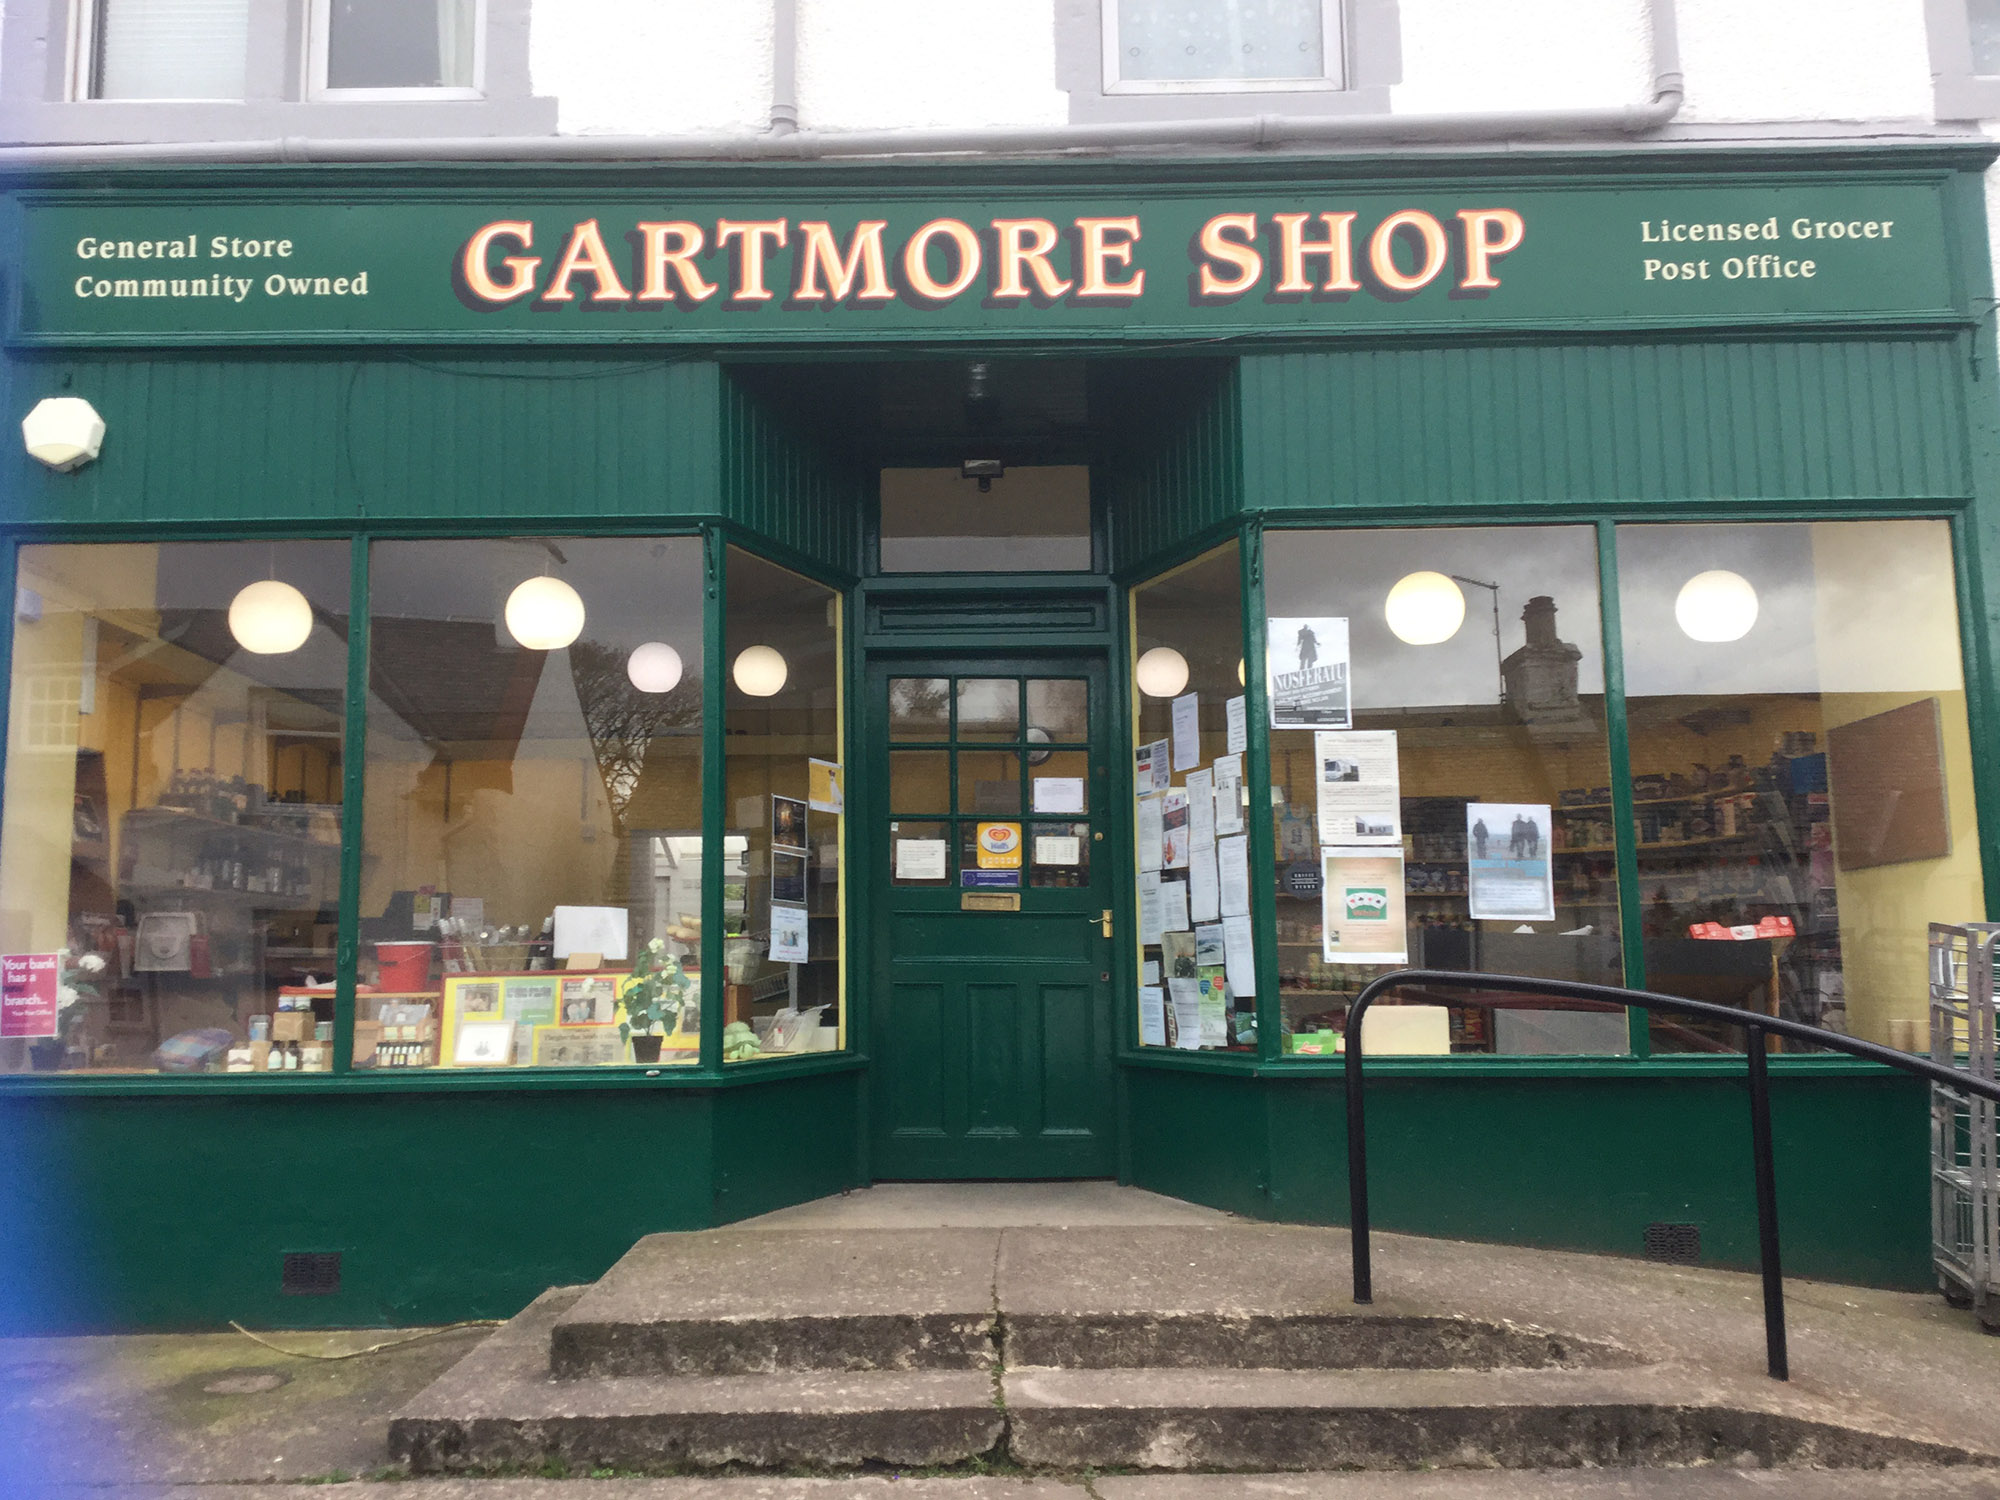 Gartmore Shop & Post Office, Stirling, Scotland